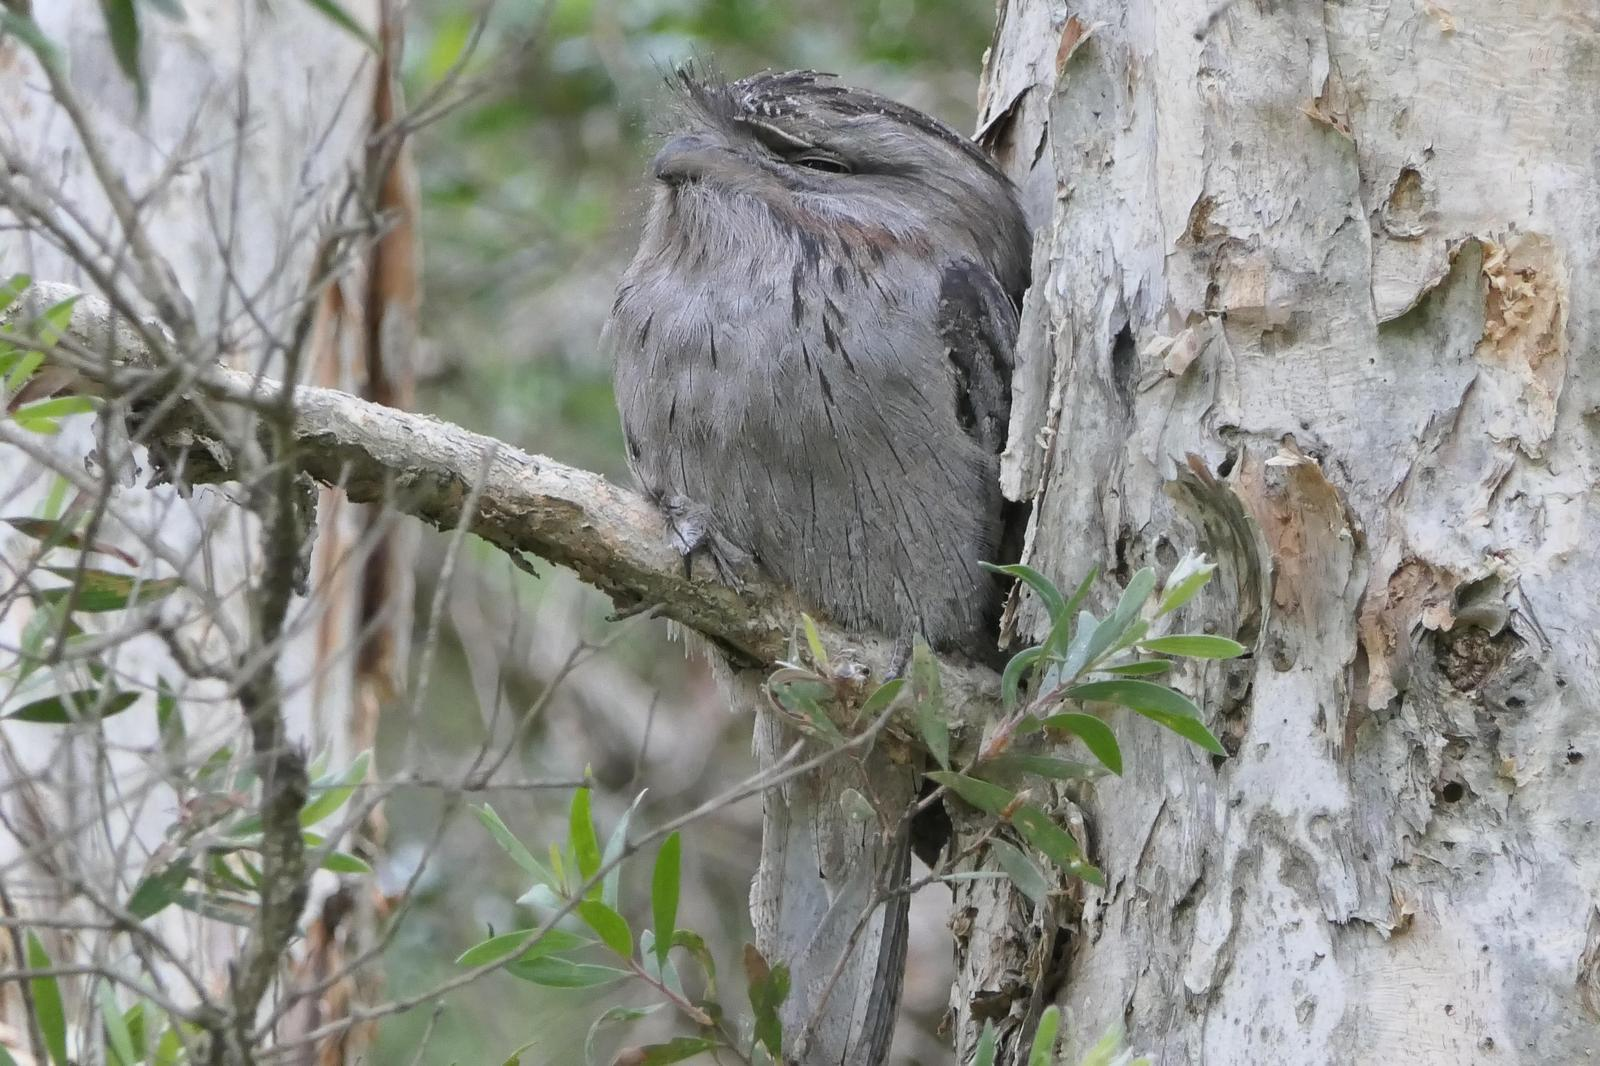 Tawny Frogmouth Photo by Randy Siebert